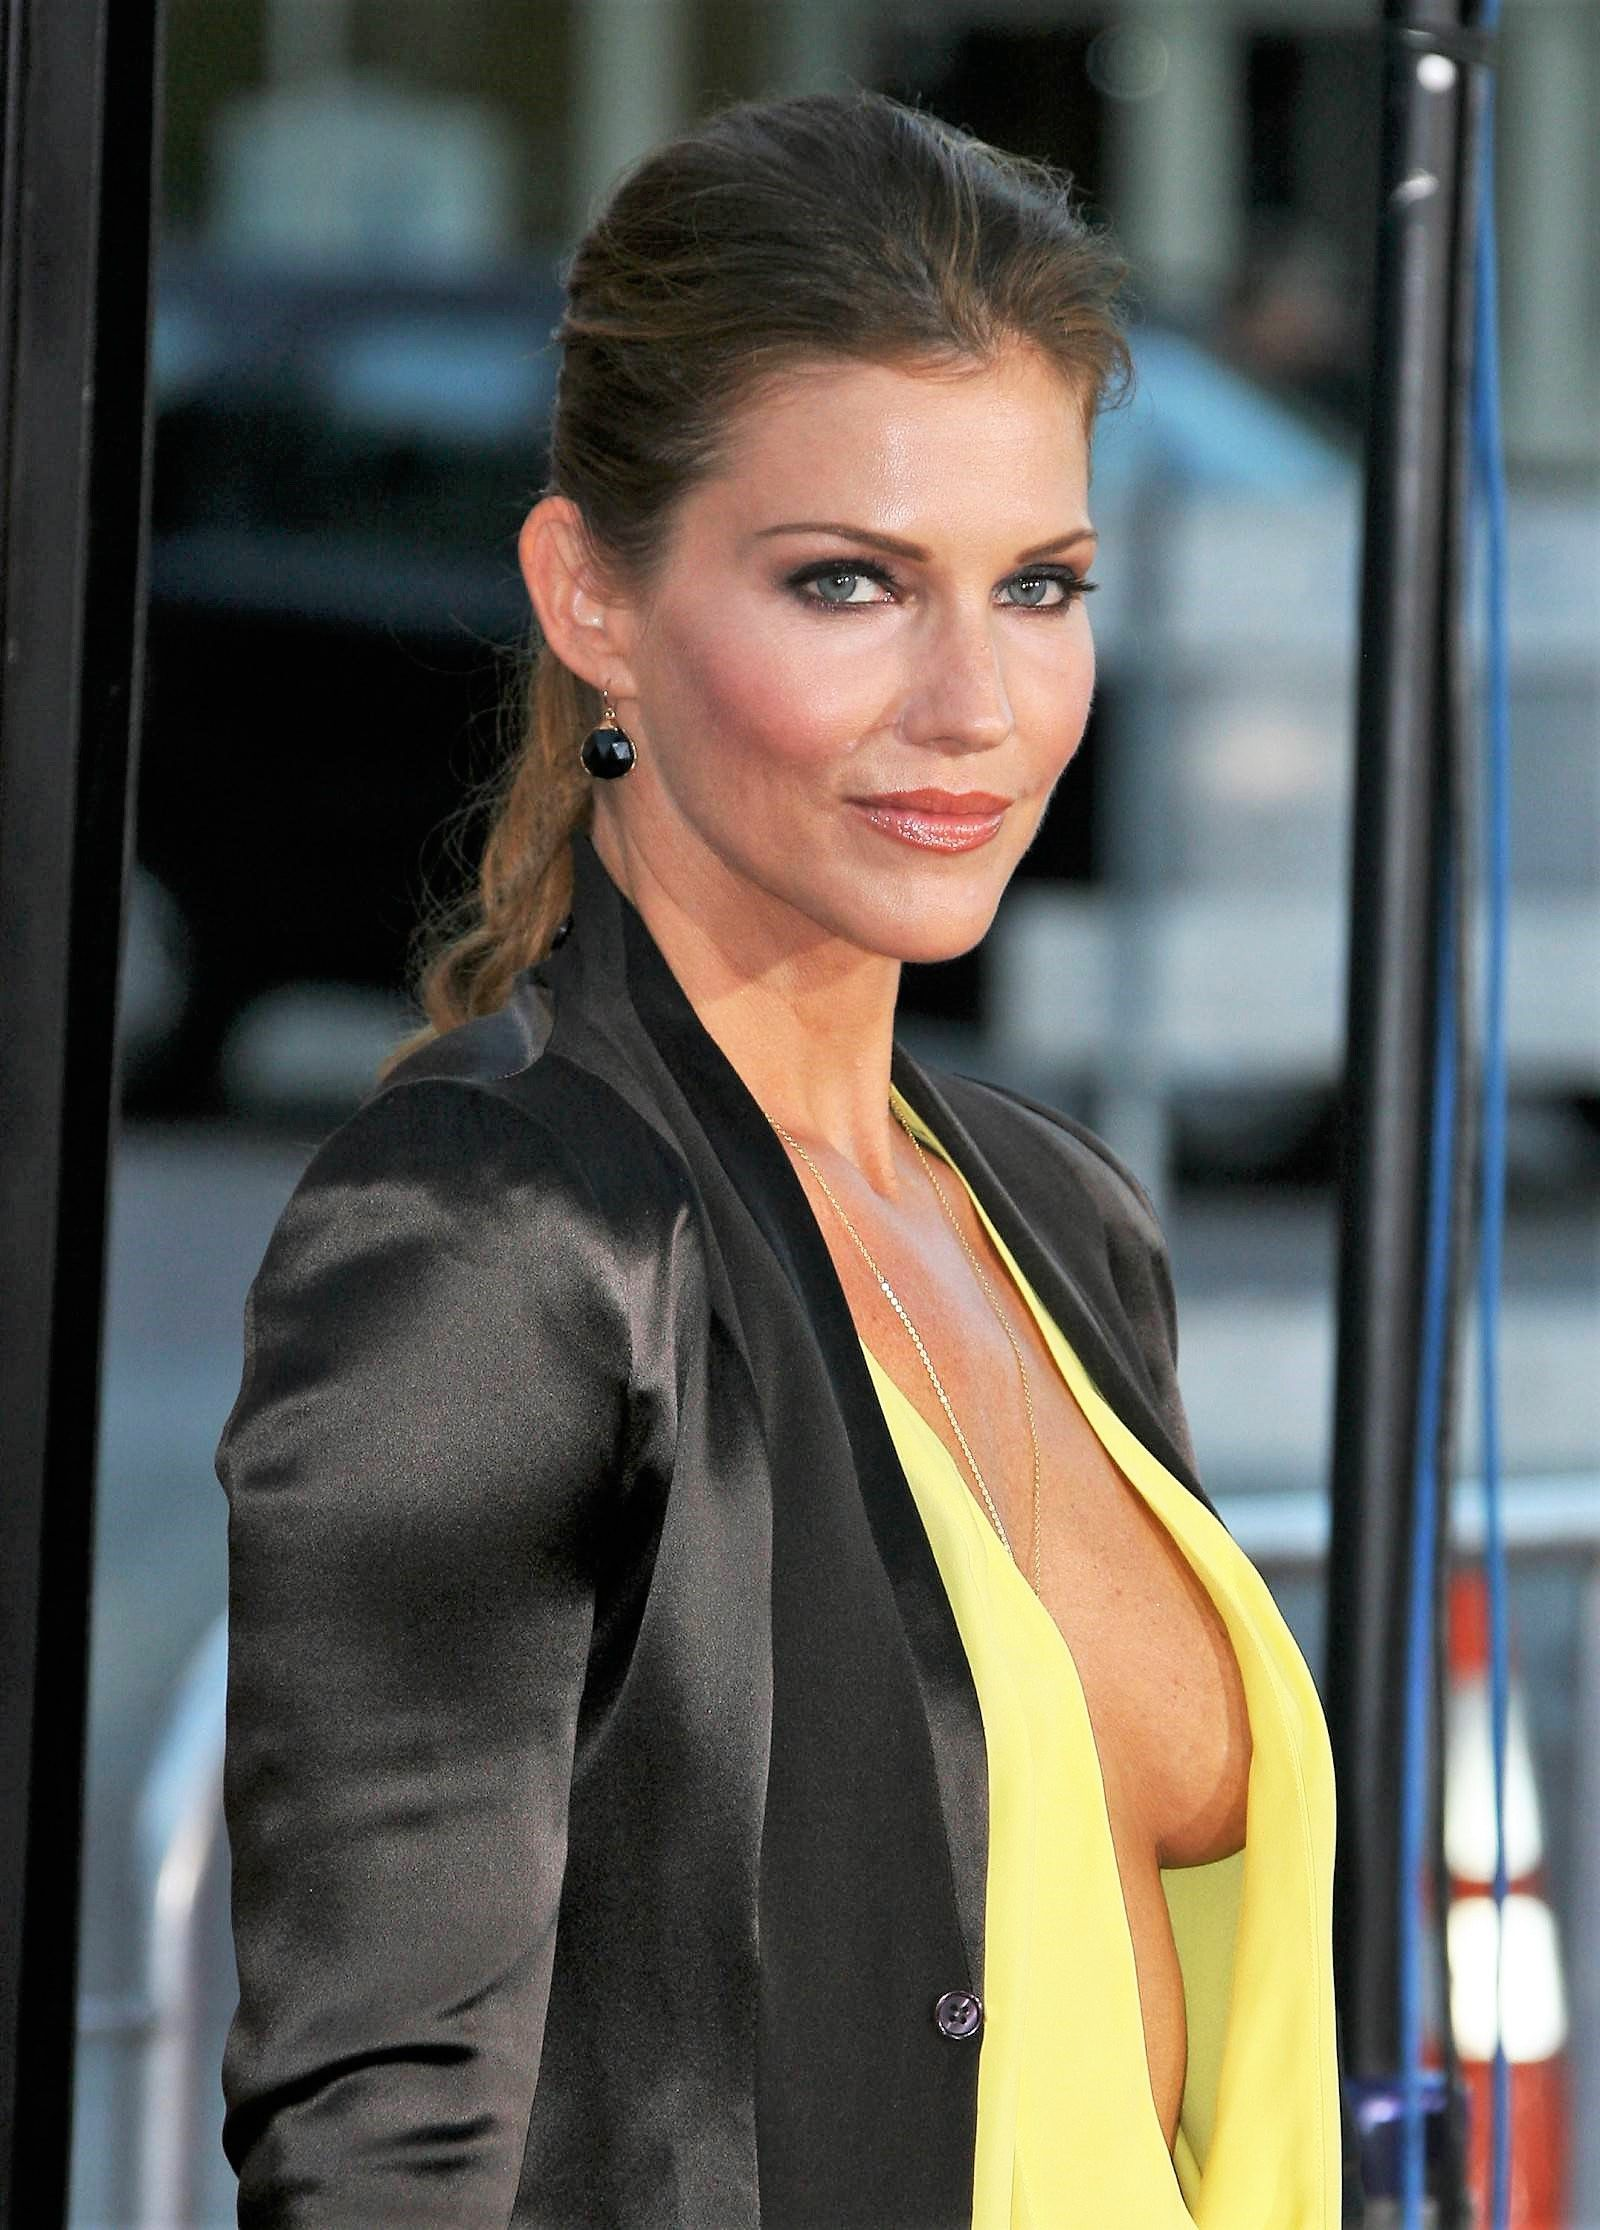 Tricia Helfer nude photos 2019